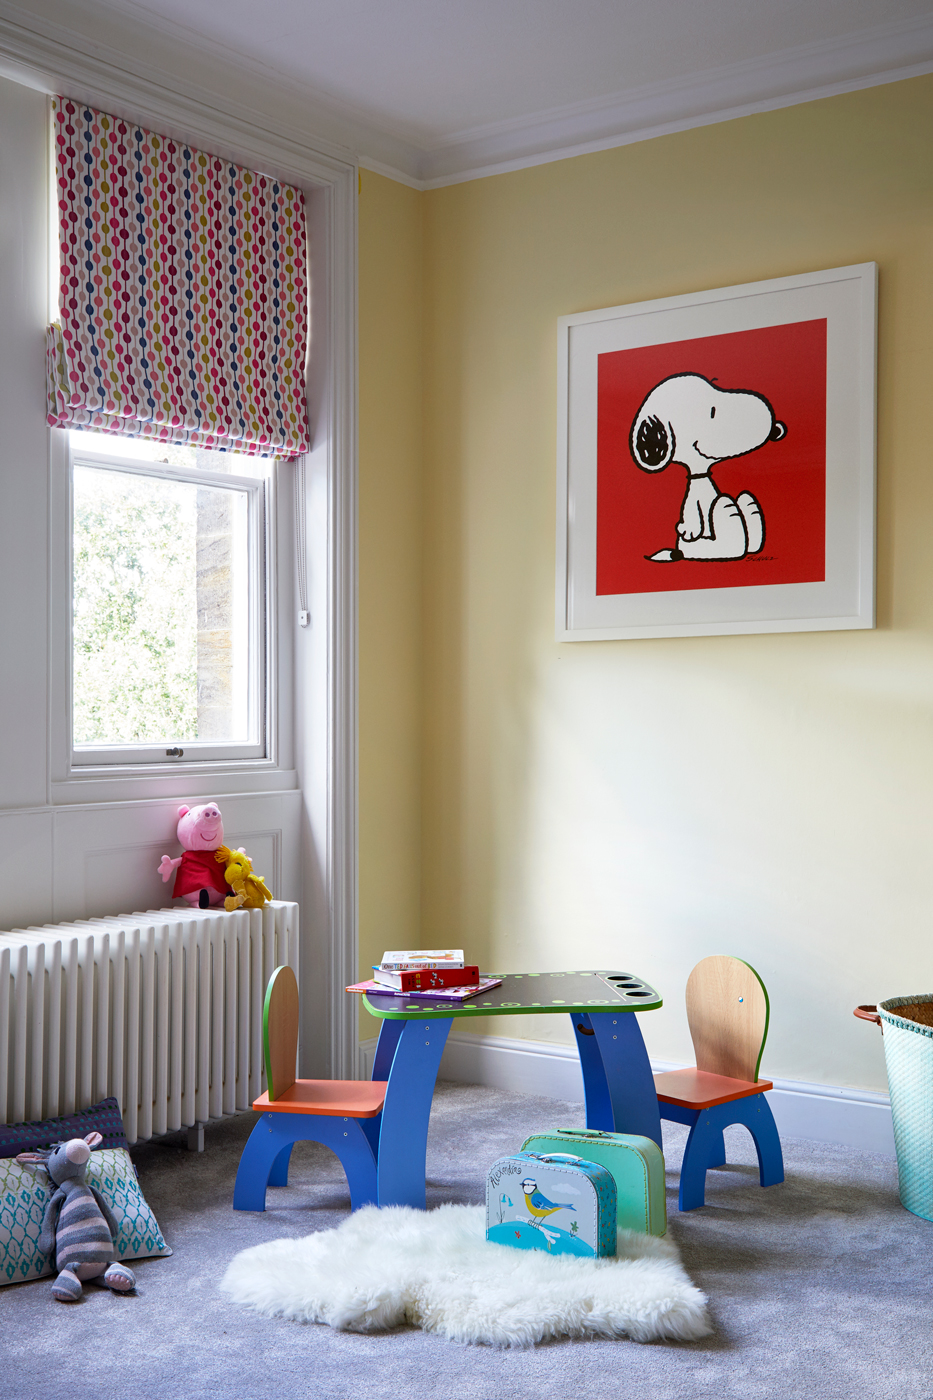 children's bedroom with yellow walls